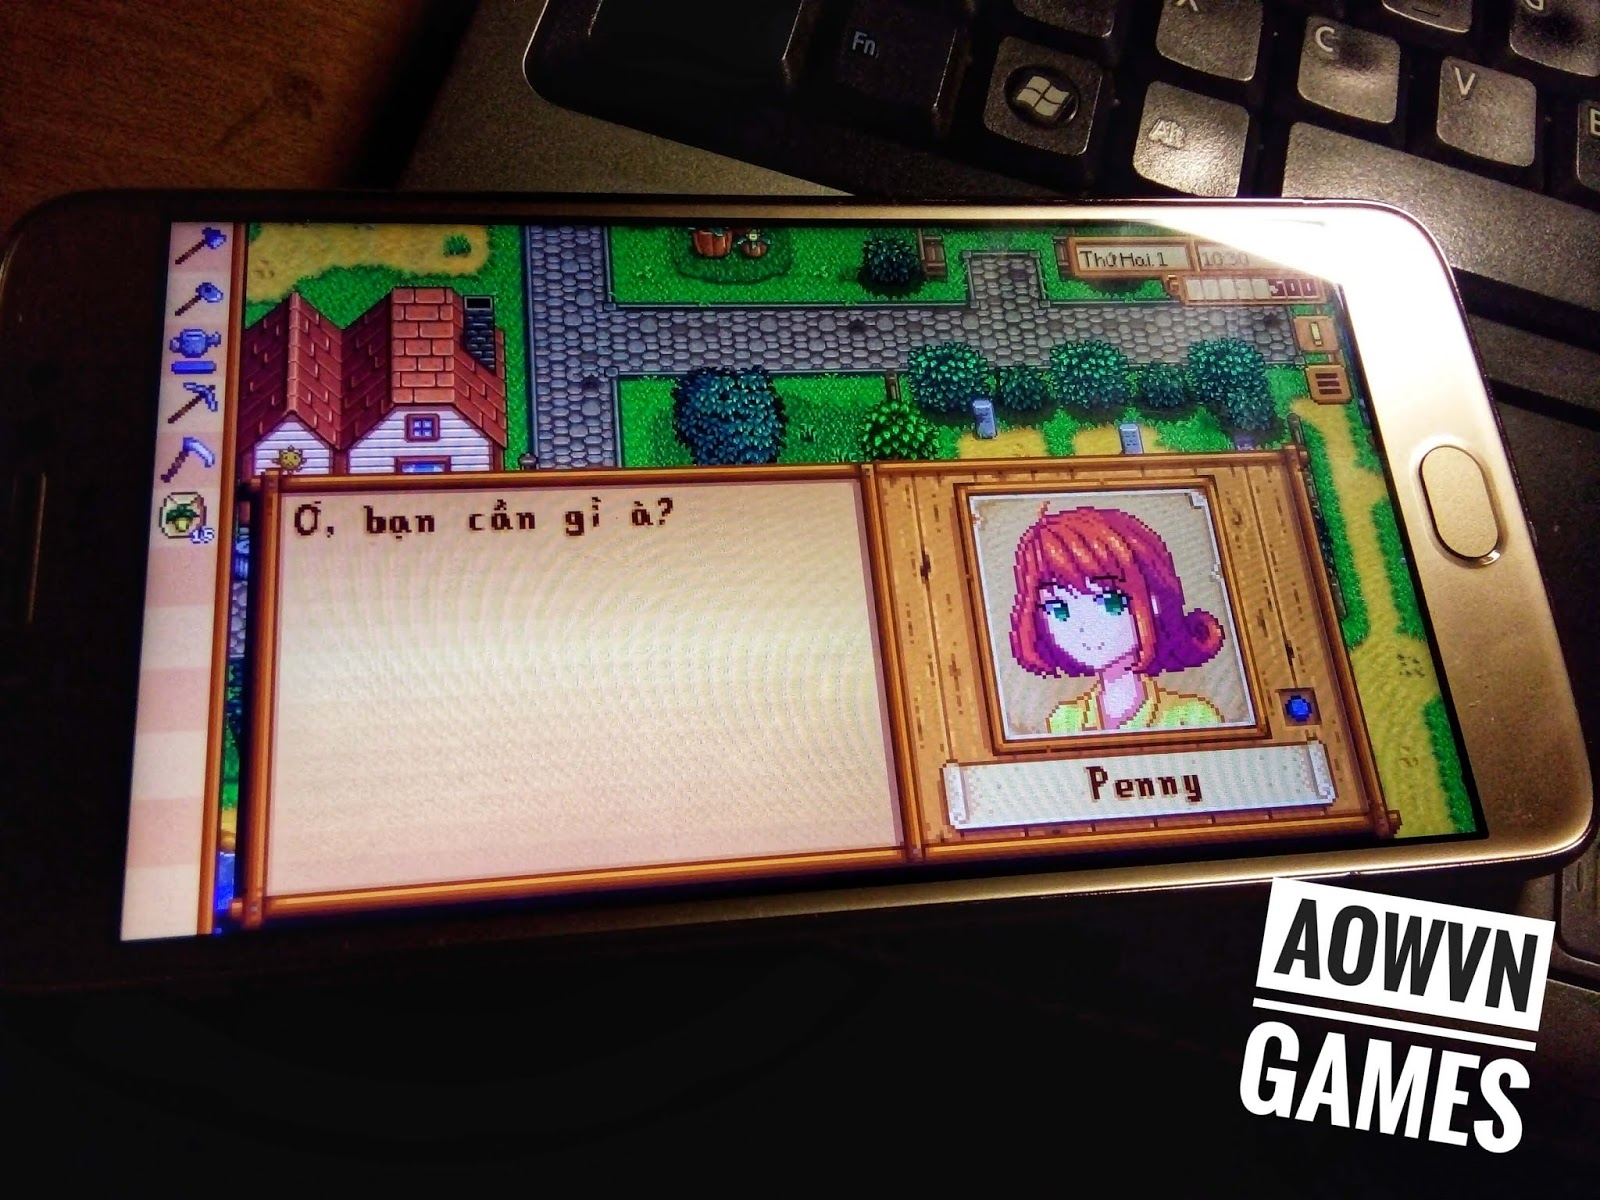 stardew valley viet hoa game android apk aowvn - [ HOT ] Game Stardew Valley Việt Hóa Full + Mod Anime | Android APK - tuyệt phẩm game nông trại Ver 1.0.4 Fix